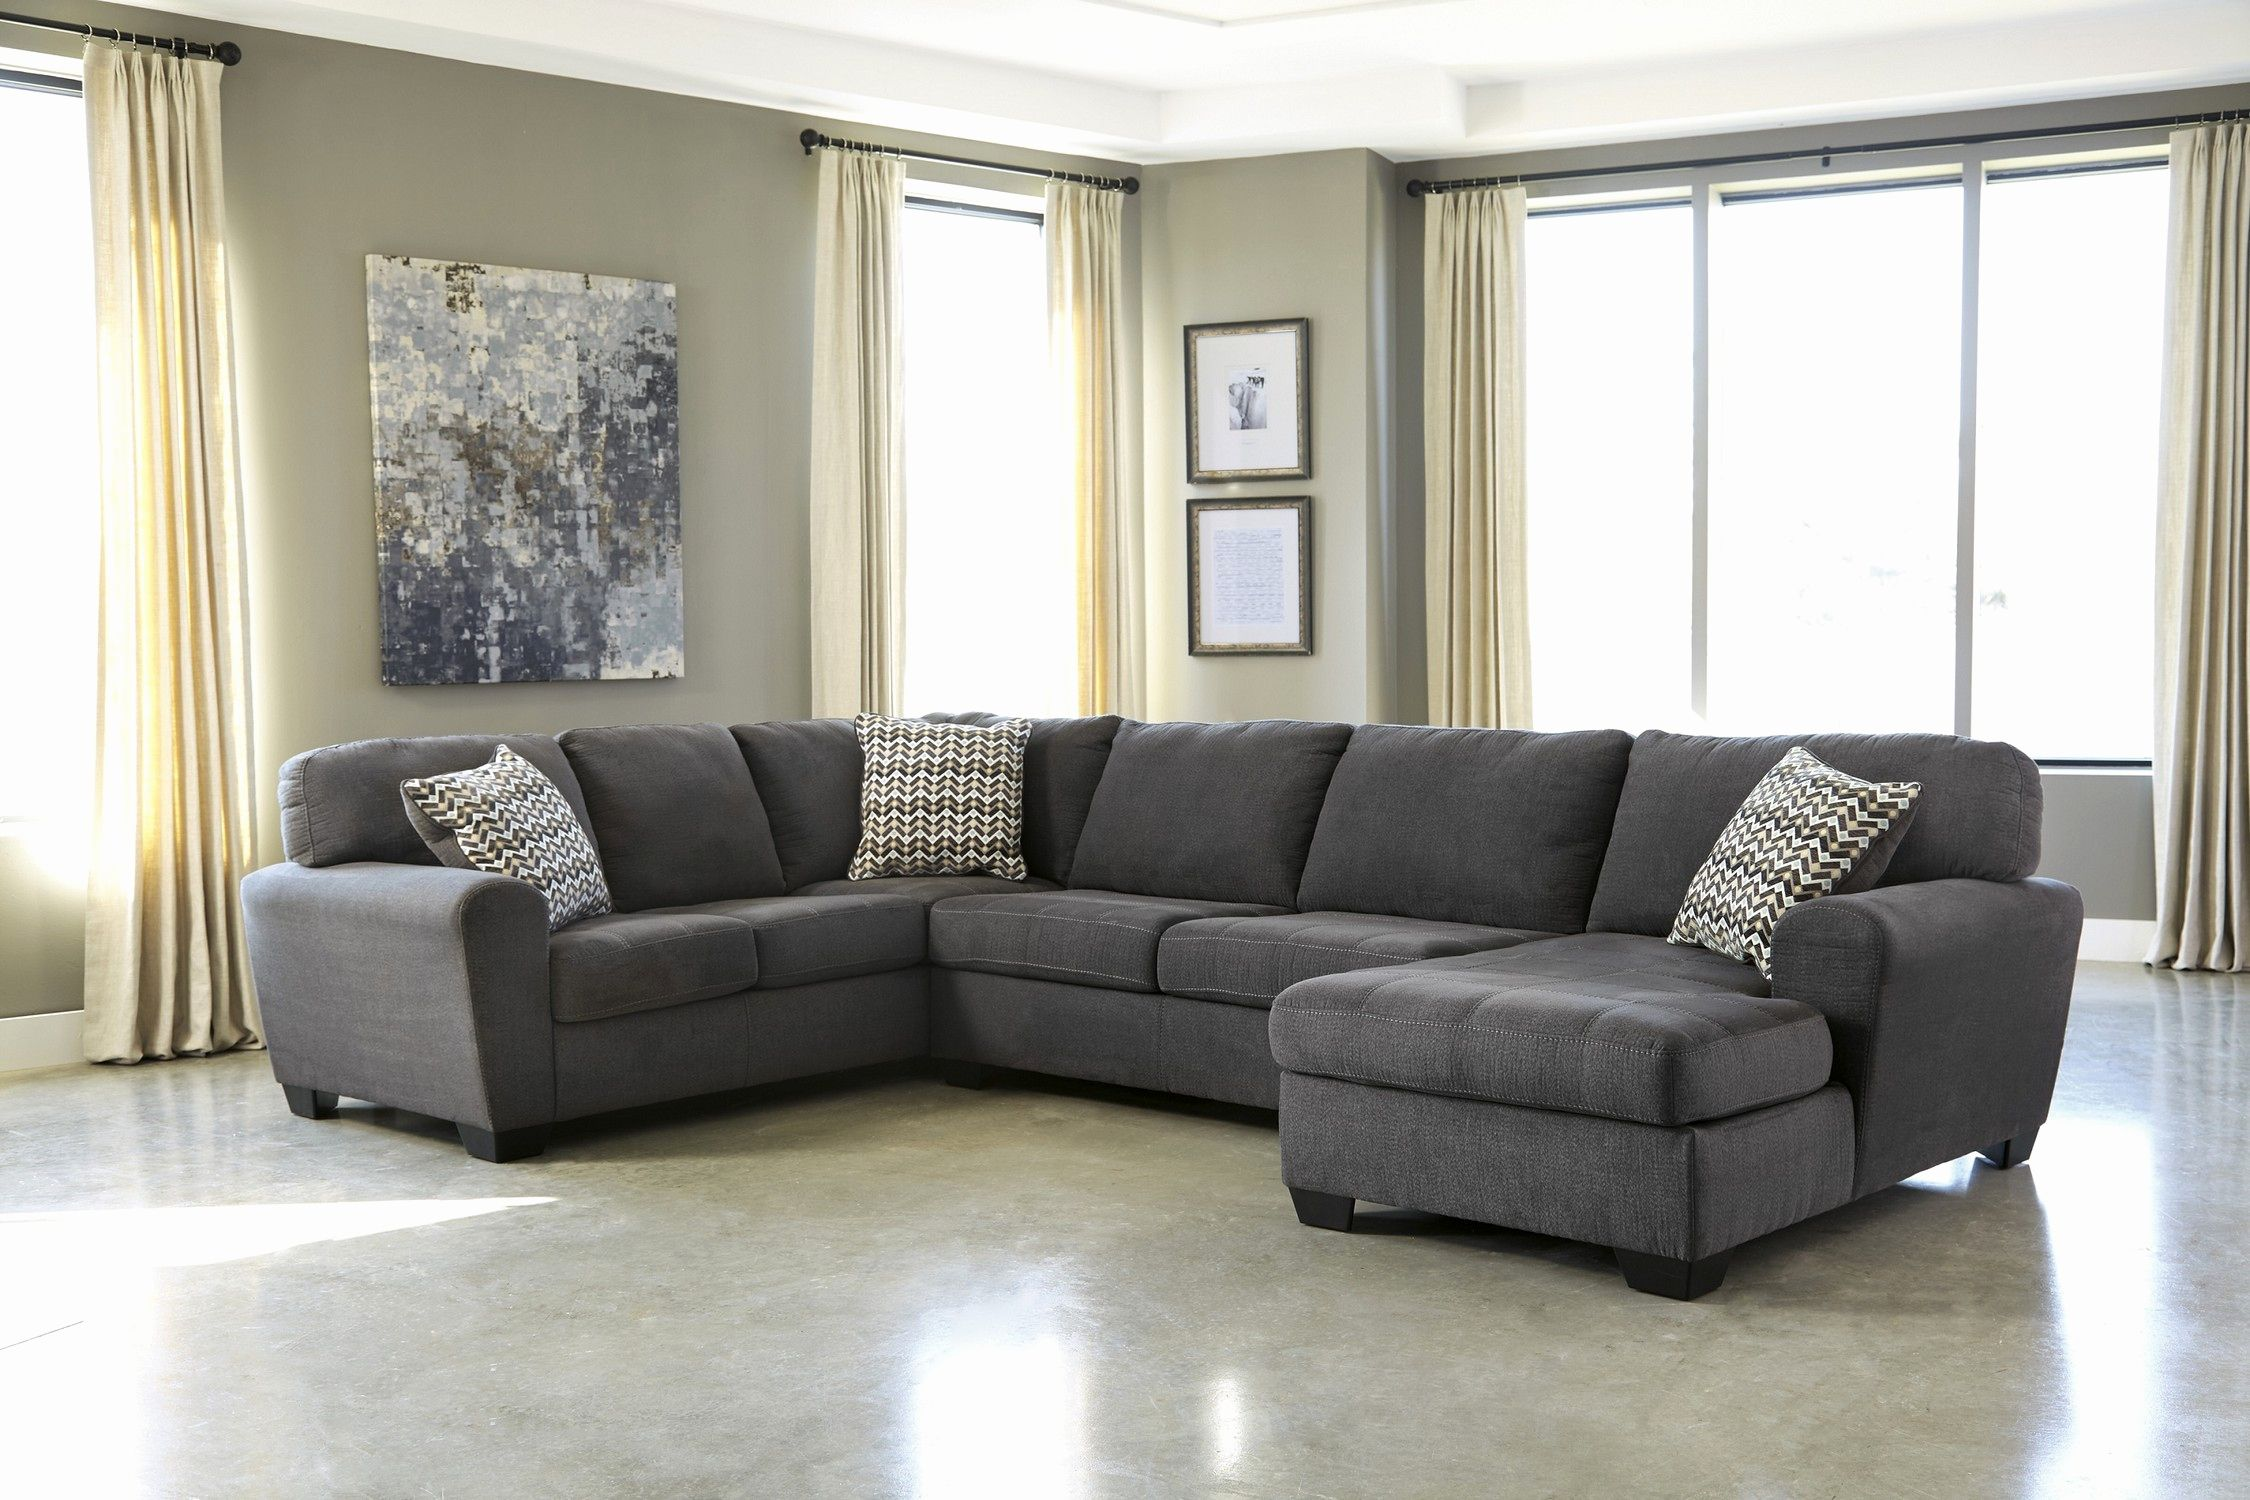 unique charcoal gray sectional sofa